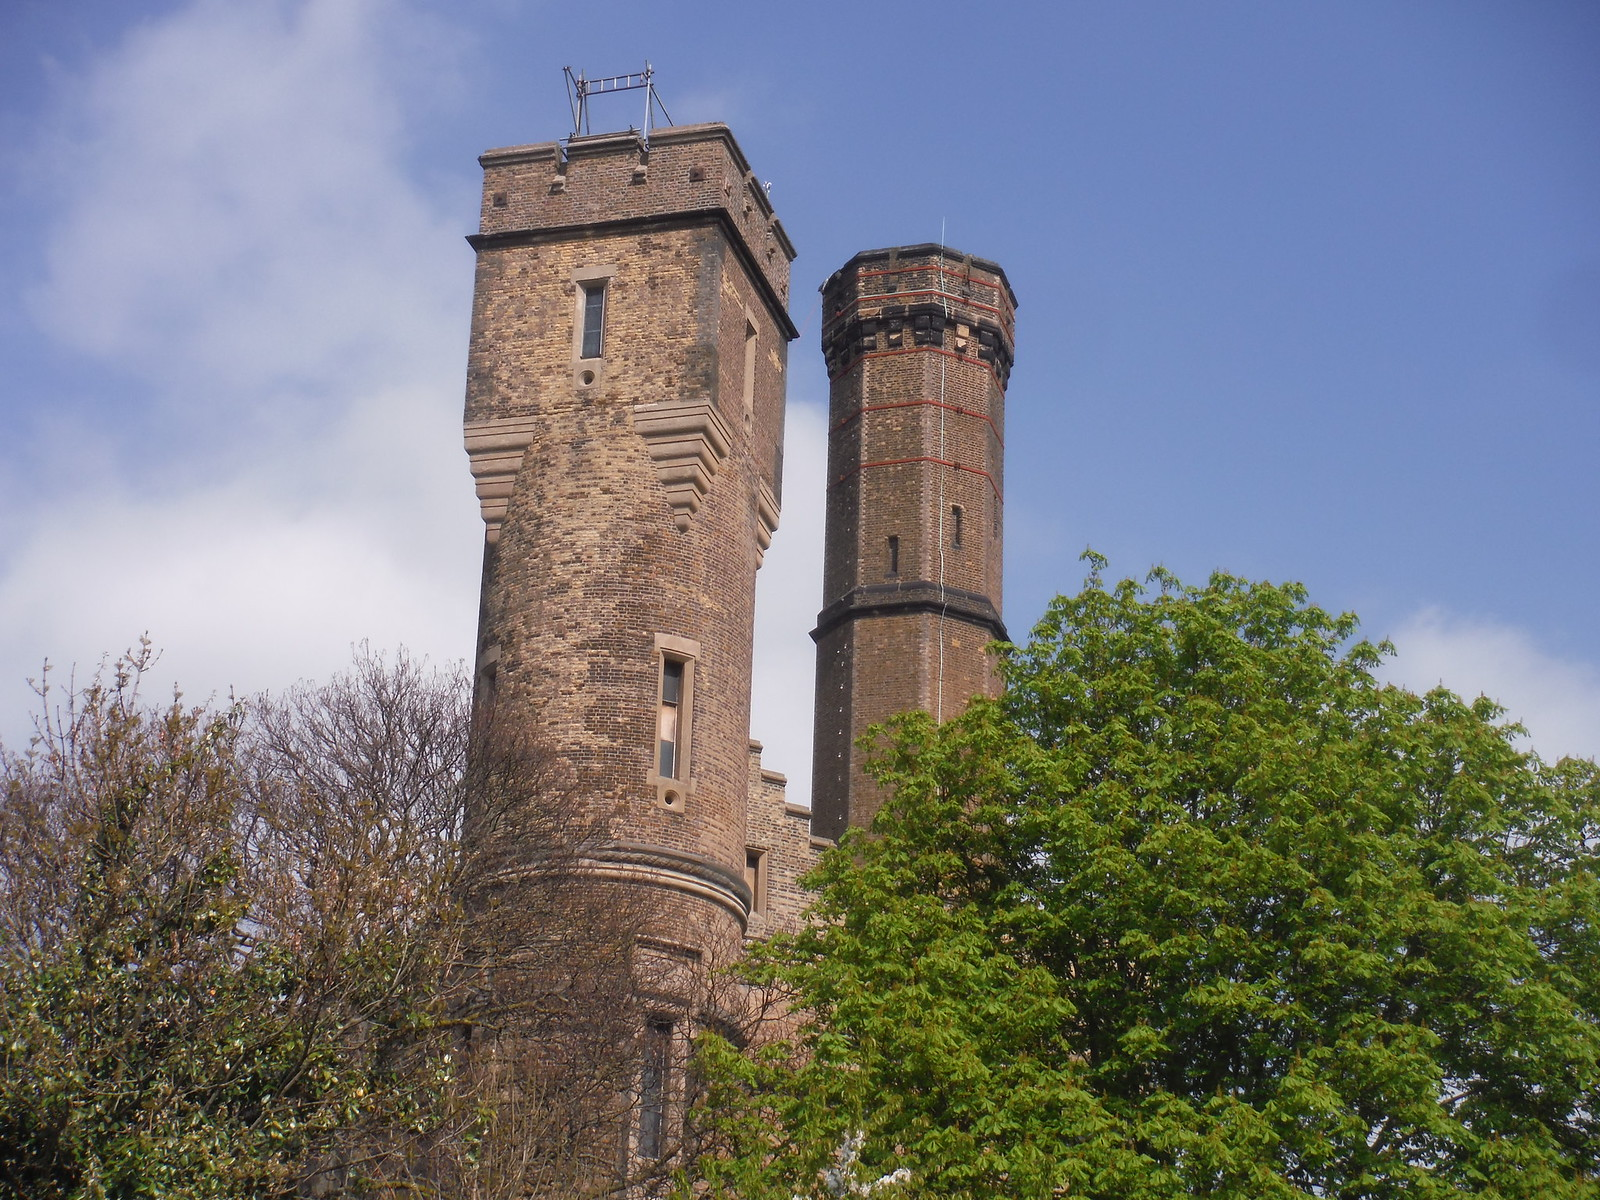 Turrets, The Castle Climbing Centre, Green Lanes SWC Short Walk 26 - Woodberry Wetlands (Stoke Newington Reservoirs)